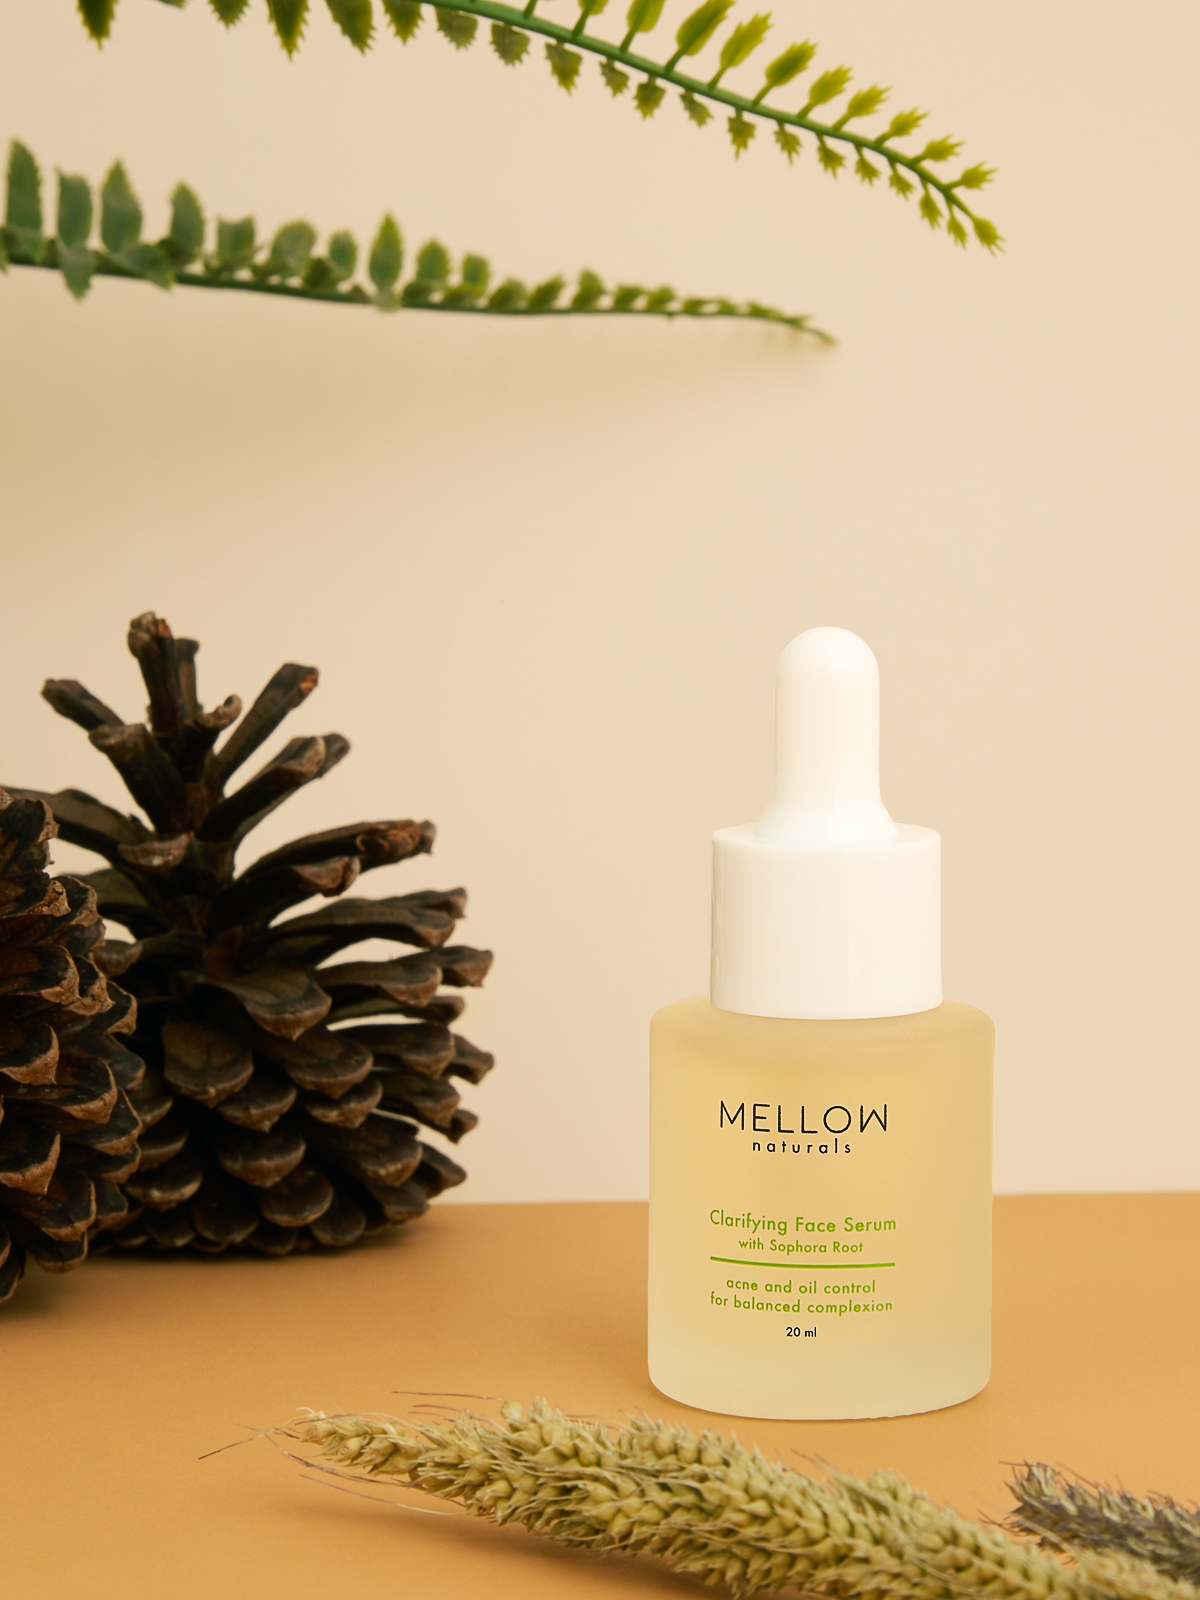 MELLOW Naturals Clarifying Face Serum With Sophora Root